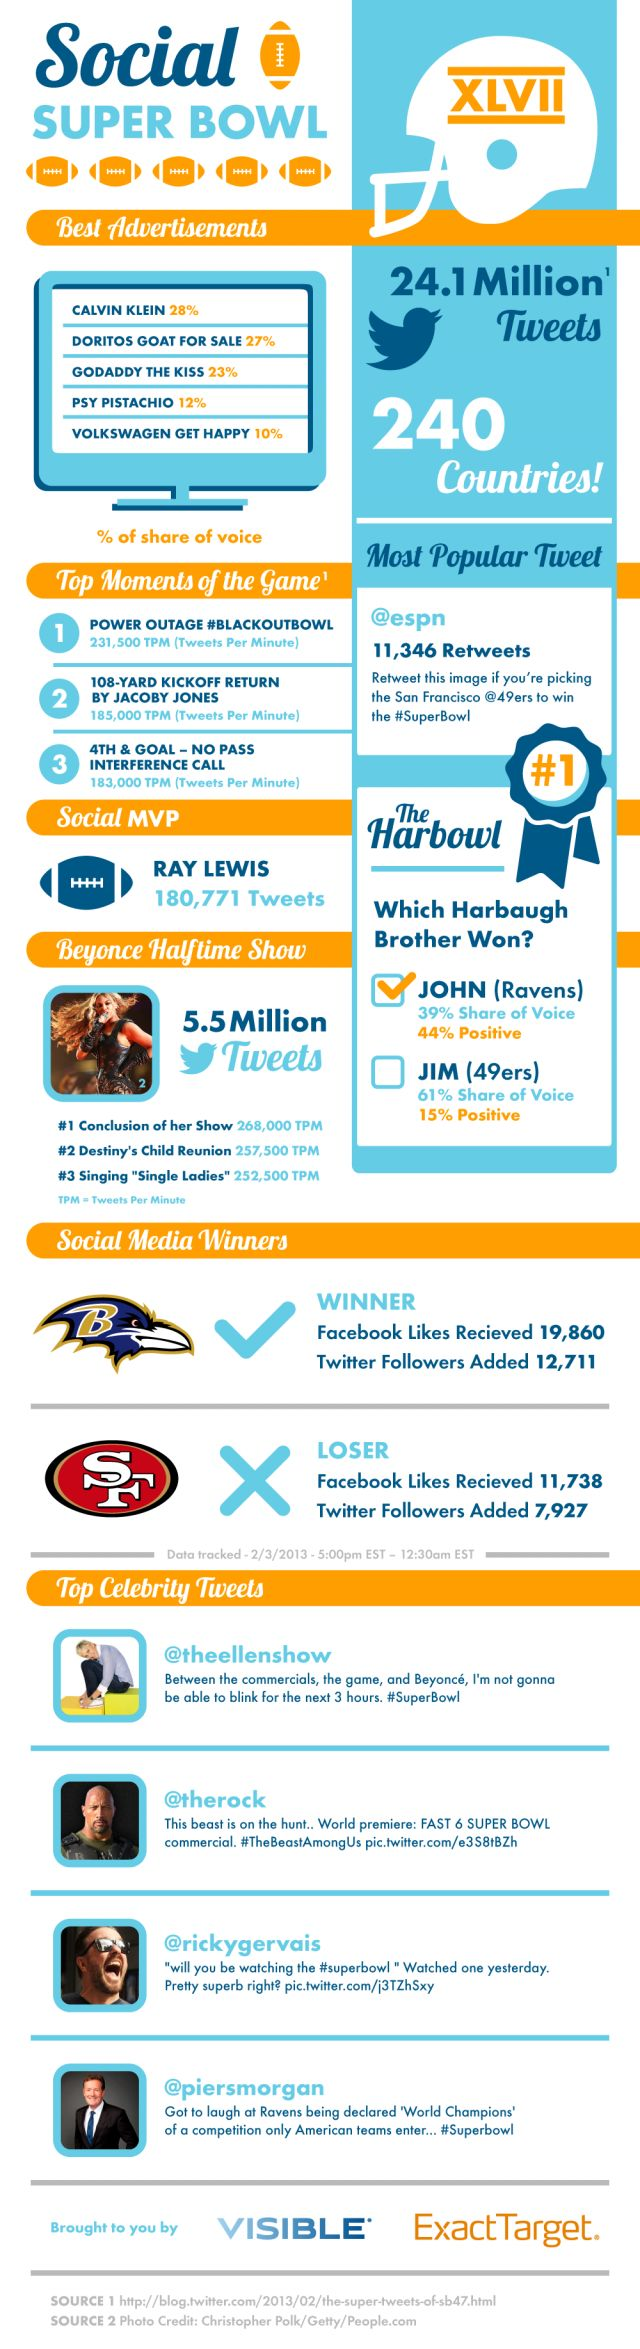 Who Won the 2013 Social Media #SuperBowl? #Infographic - Socially Creative and Delivered | ExactTarget Email Marketing